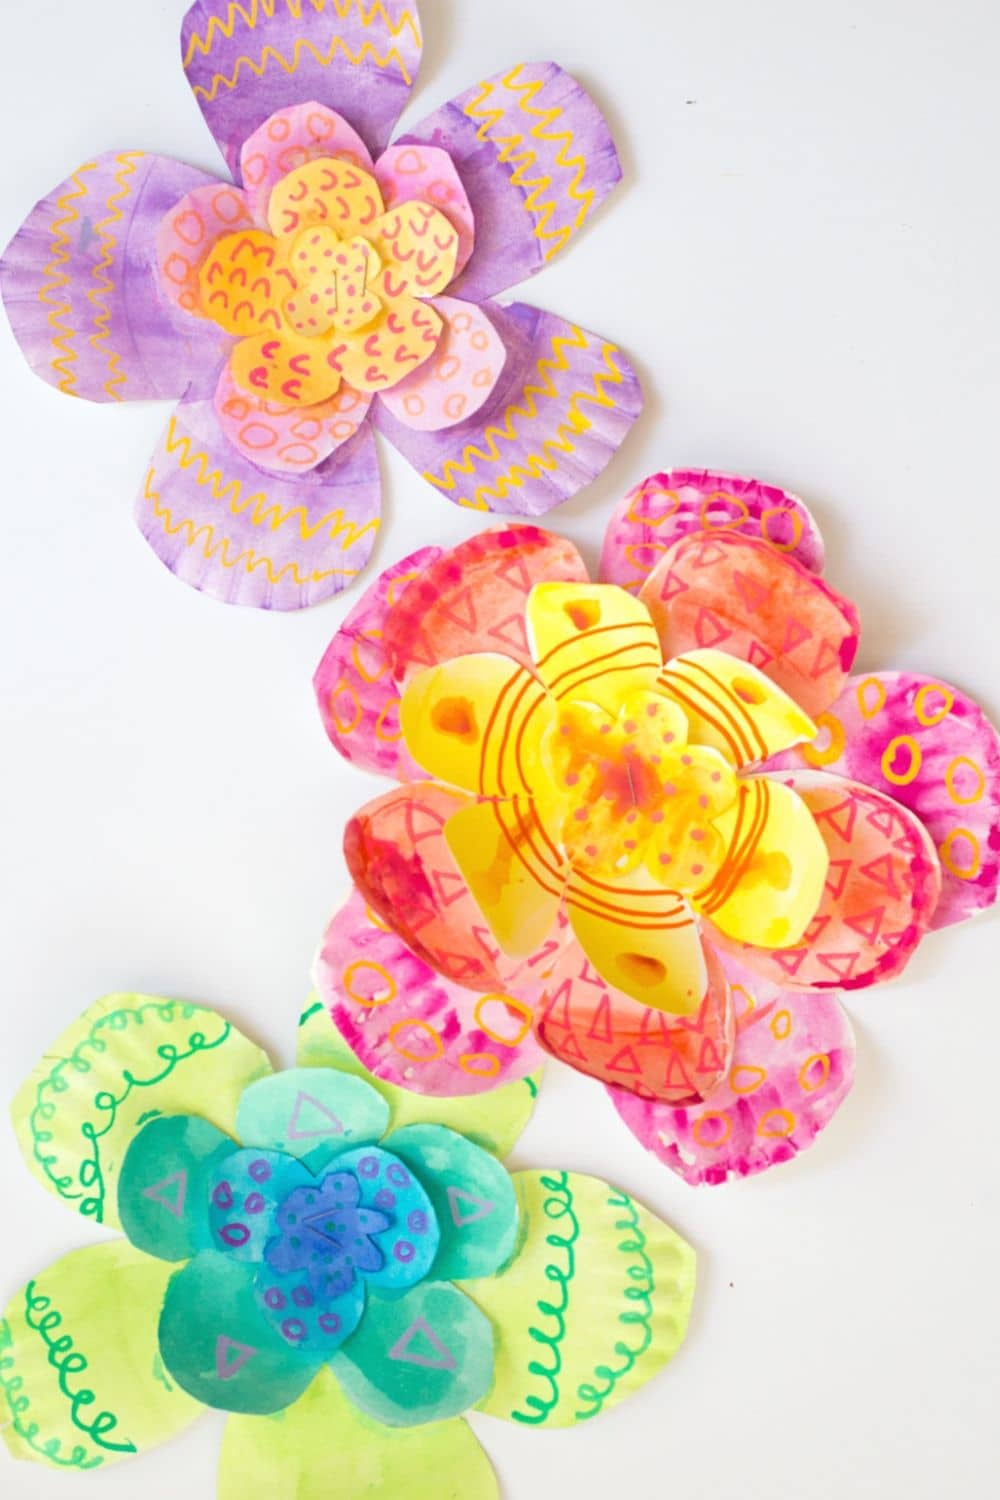 Giant Paper Plate Flowers - 1 of 12 Watercolor Art Activities for Kids